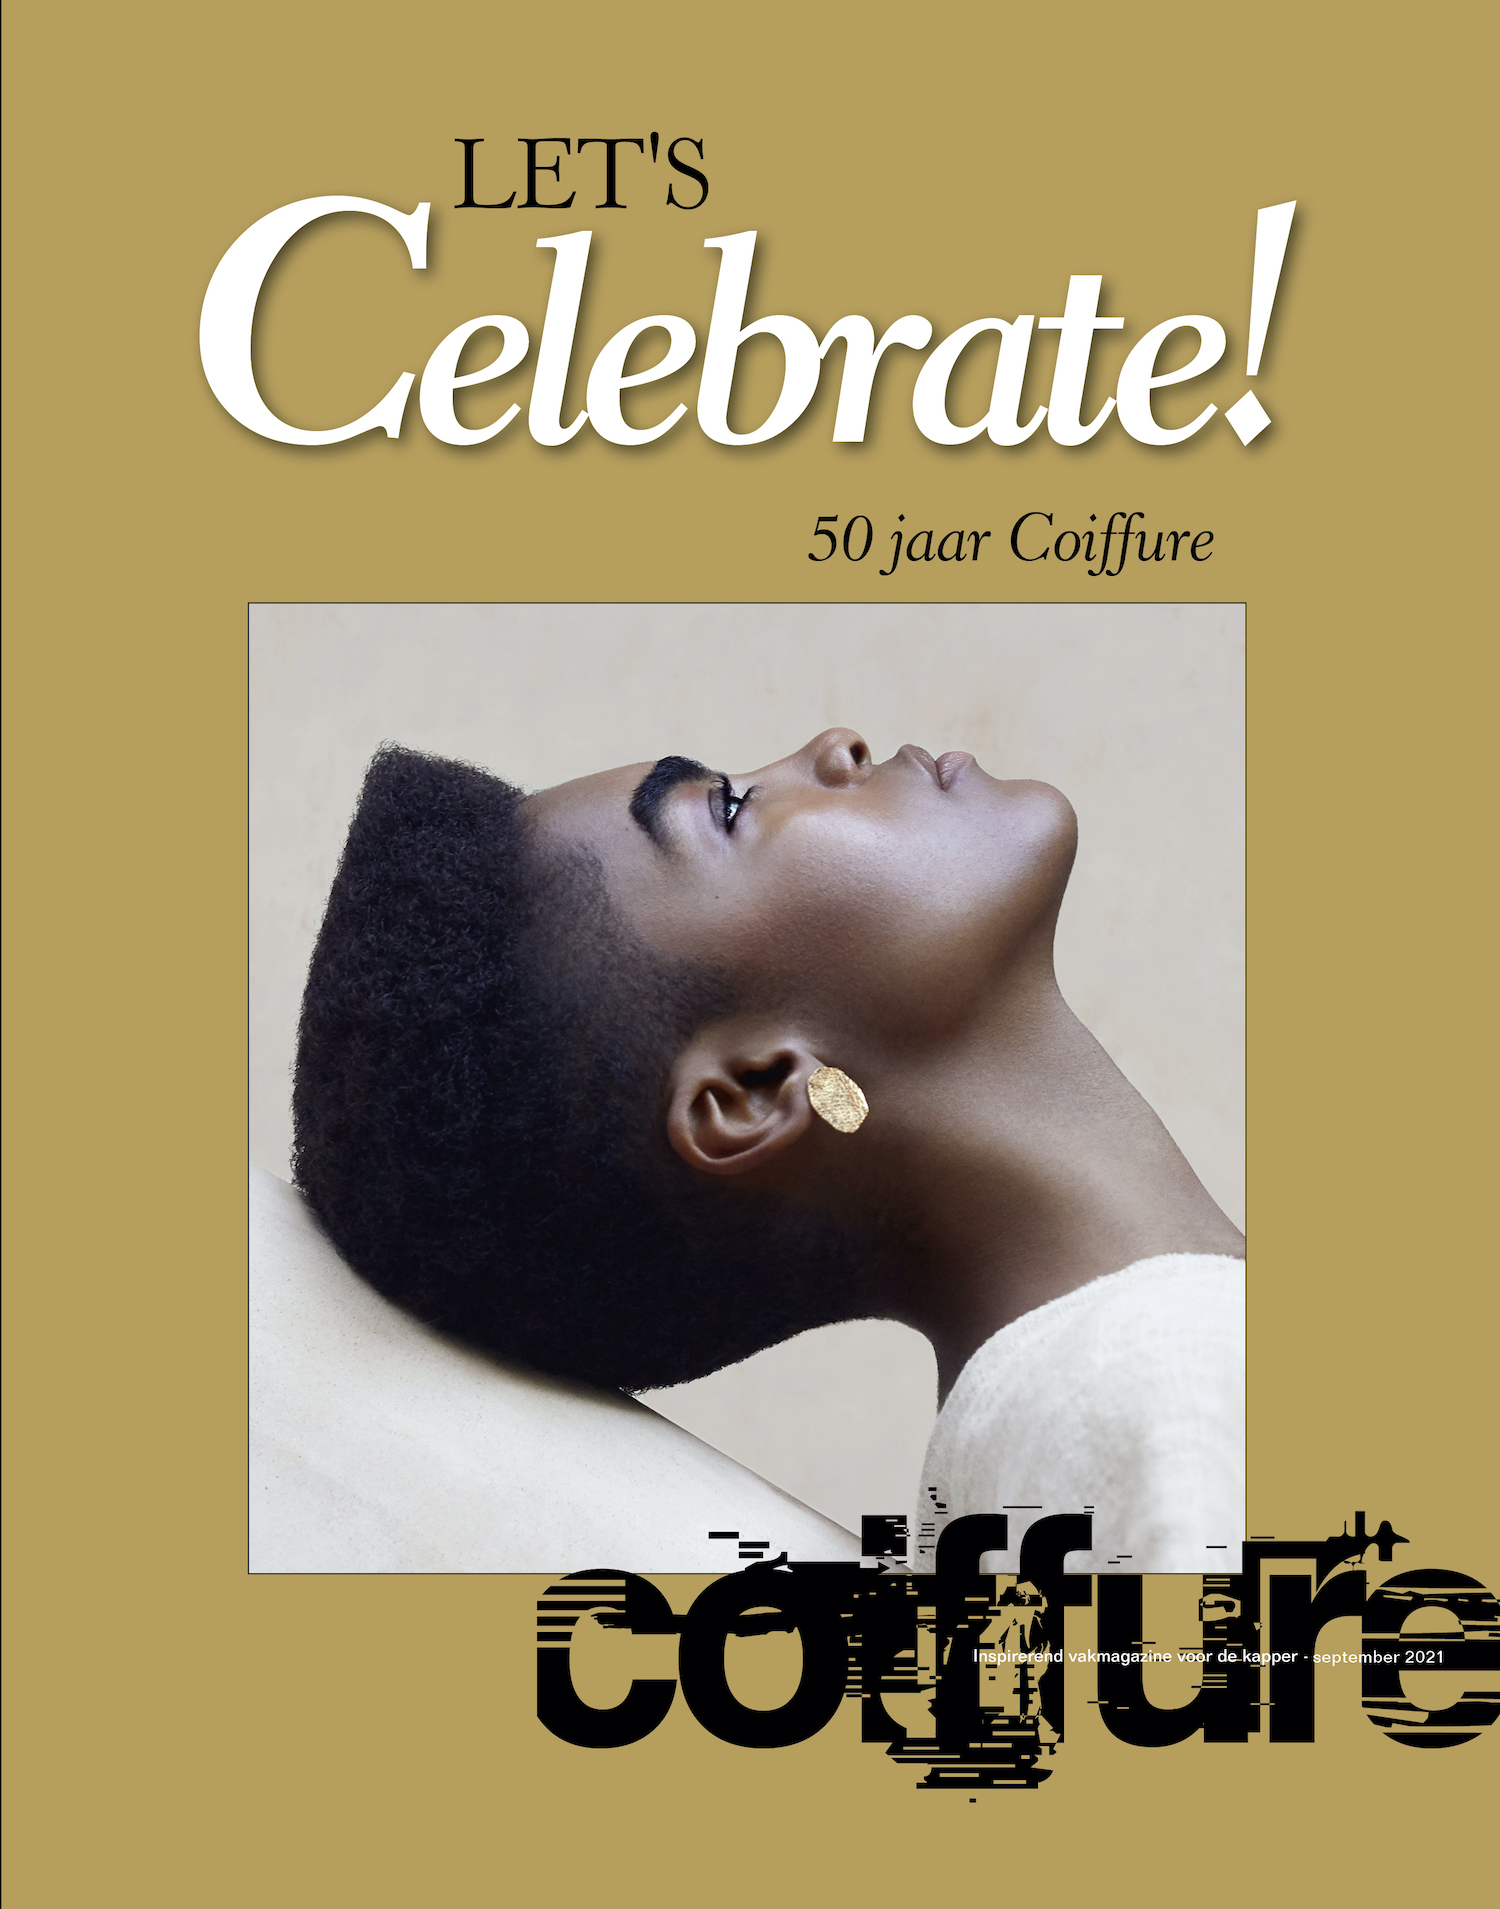 Coiffure september 21: Let's Celebrate 50 years!